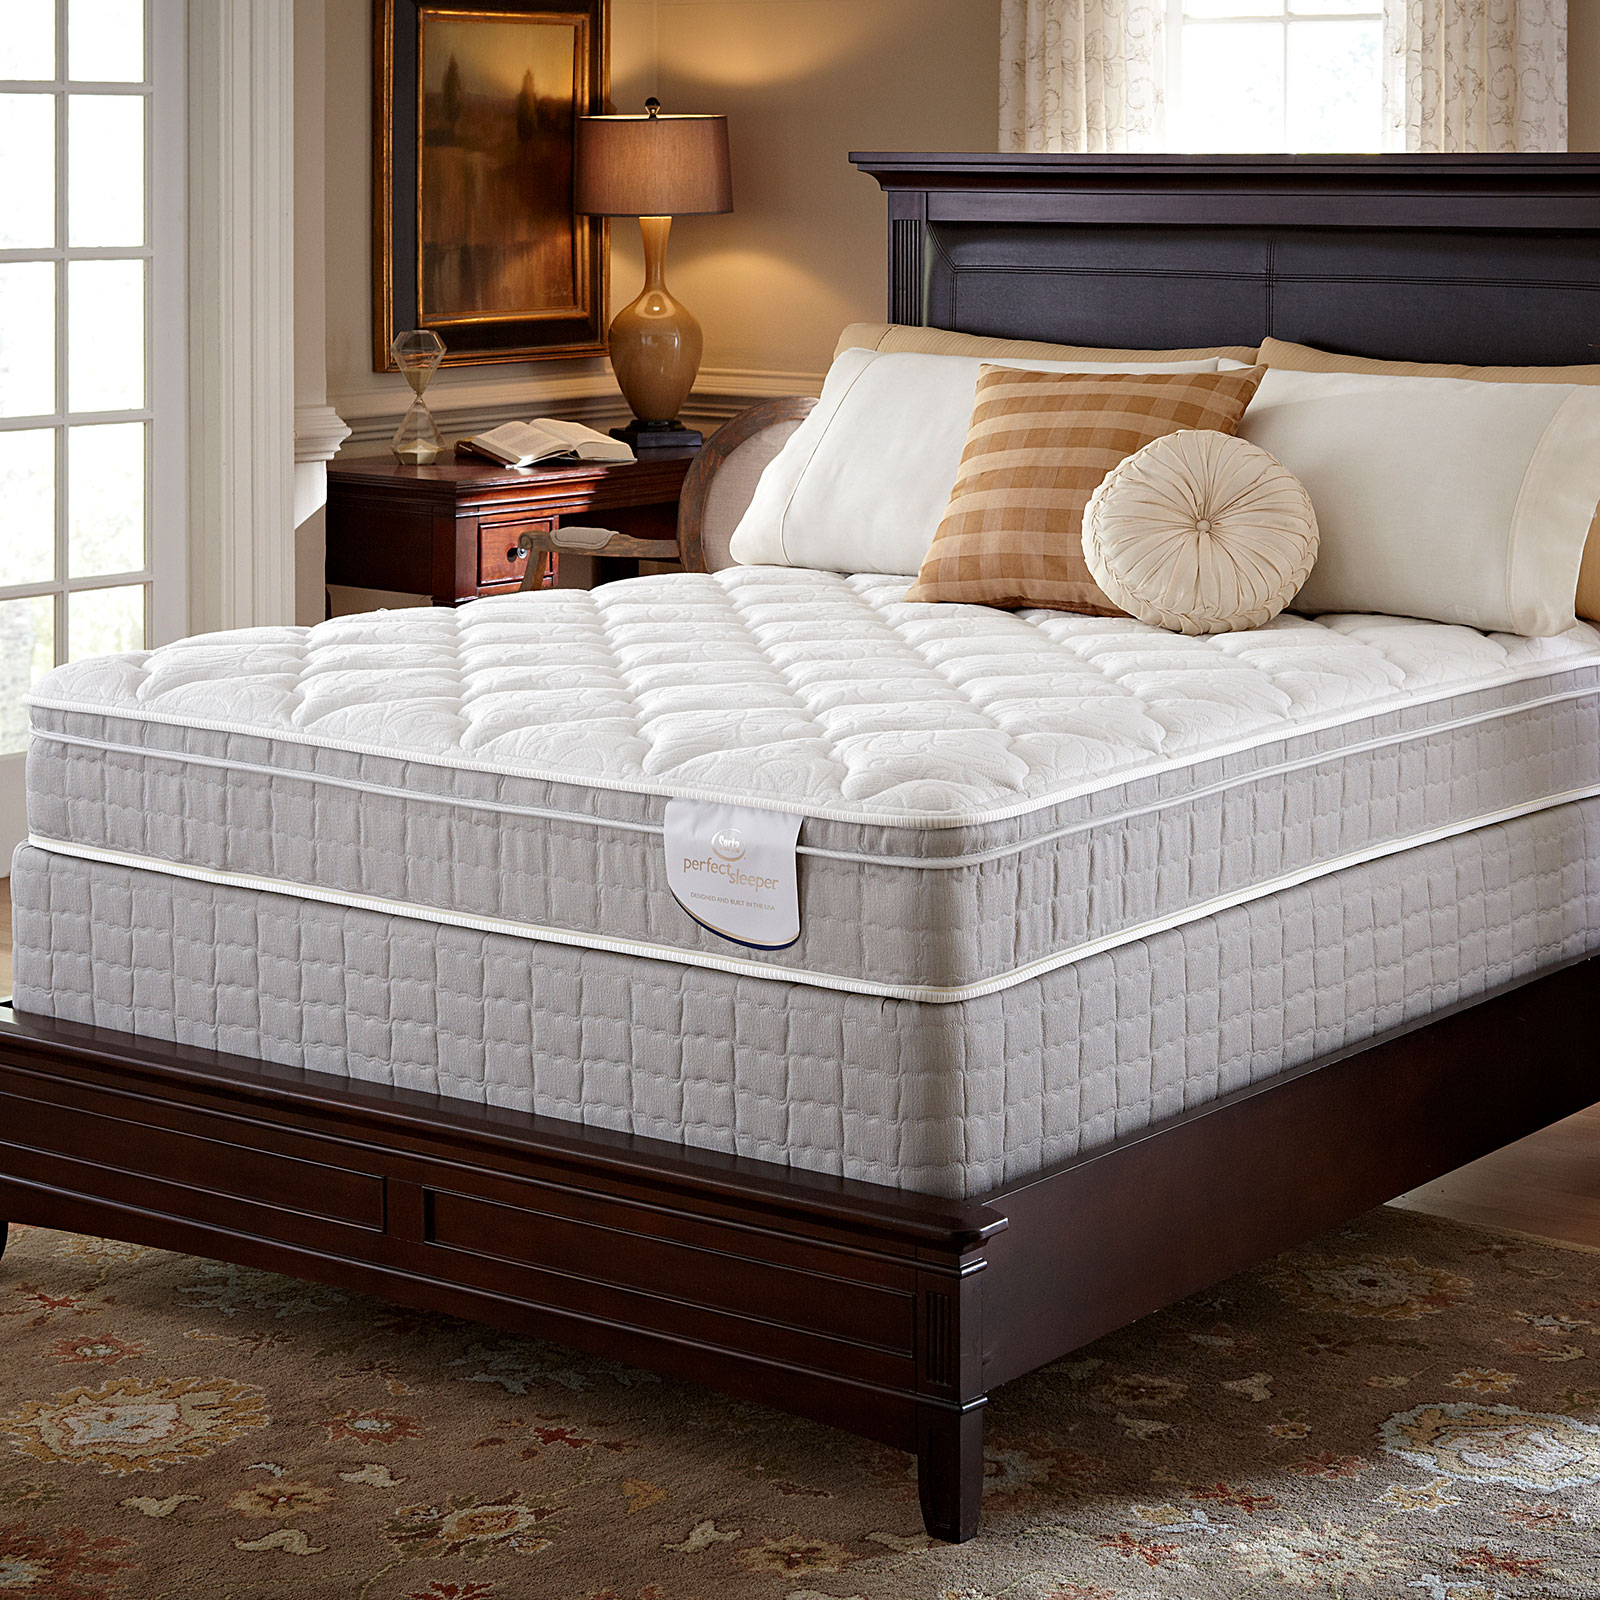 Serta Careybrook Eurotop Full Mattress